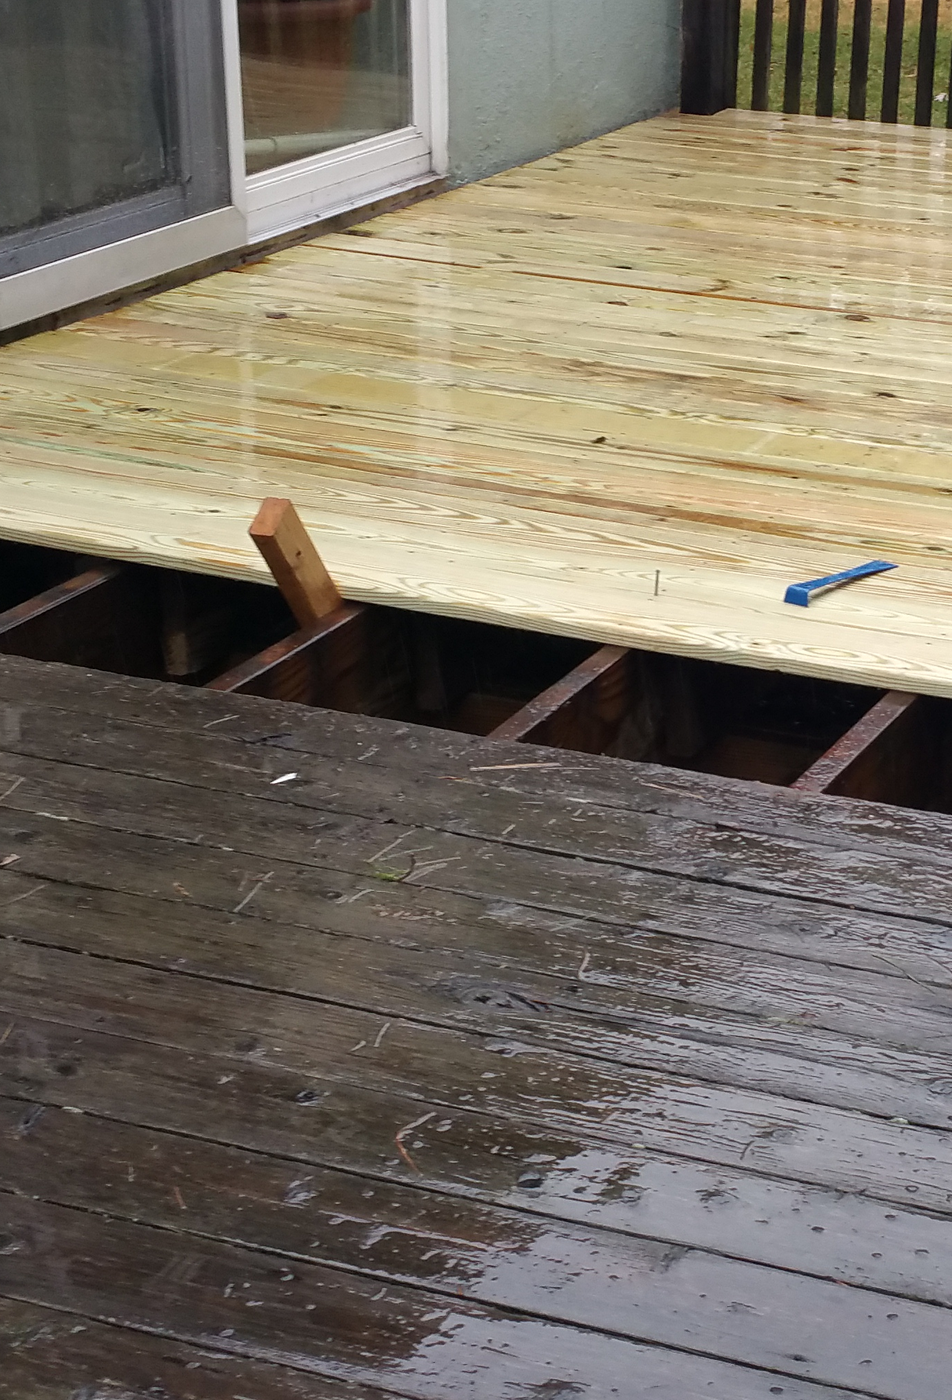 south-jersey-deck-board-replacement-contractor